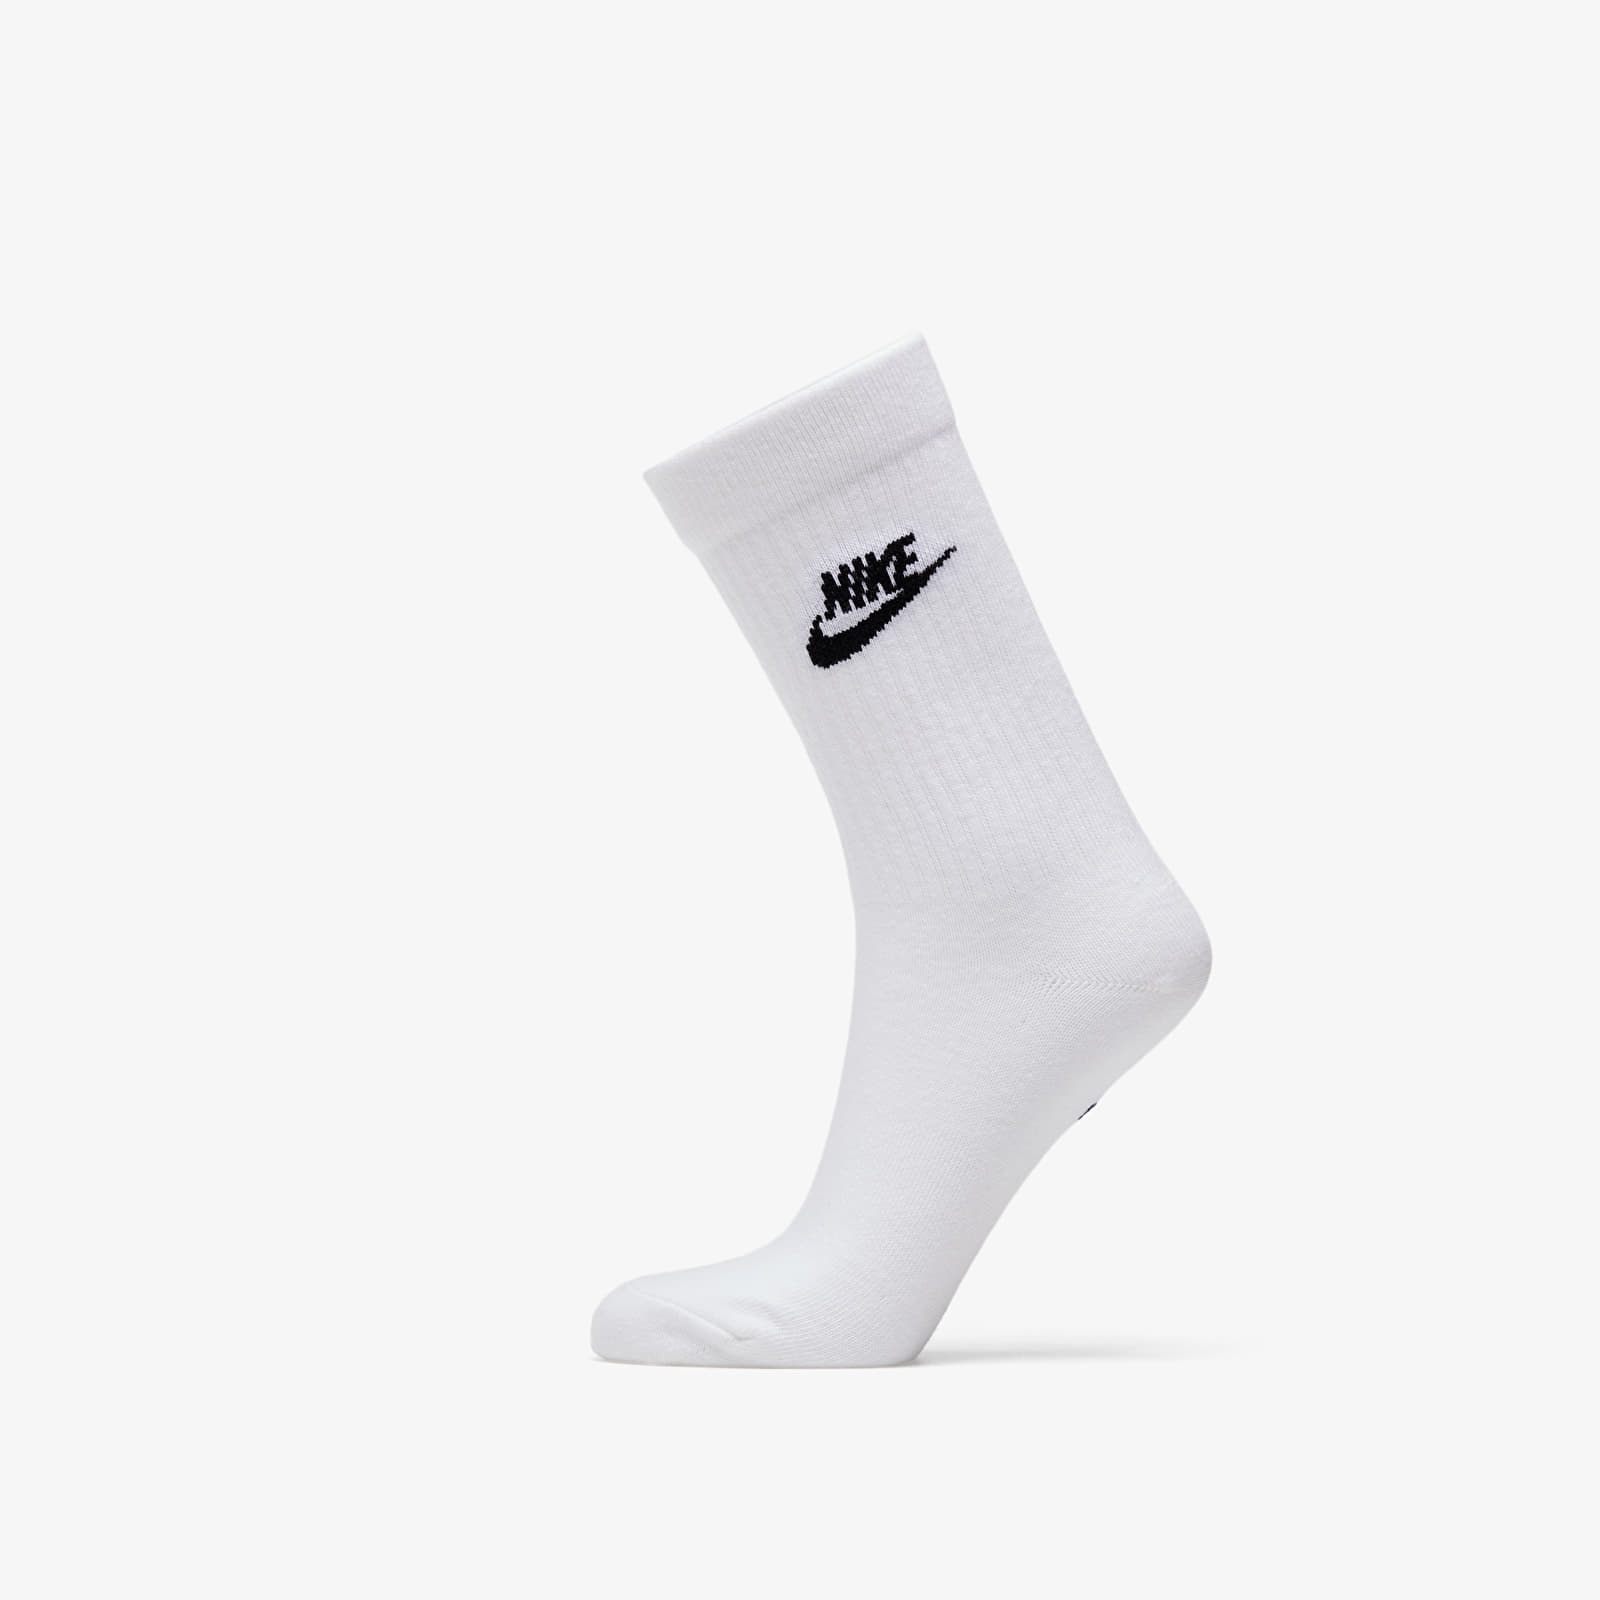 Ponožky Nike Sportswear 3 Pair Everyday Essential Crew Socks Multi-Color